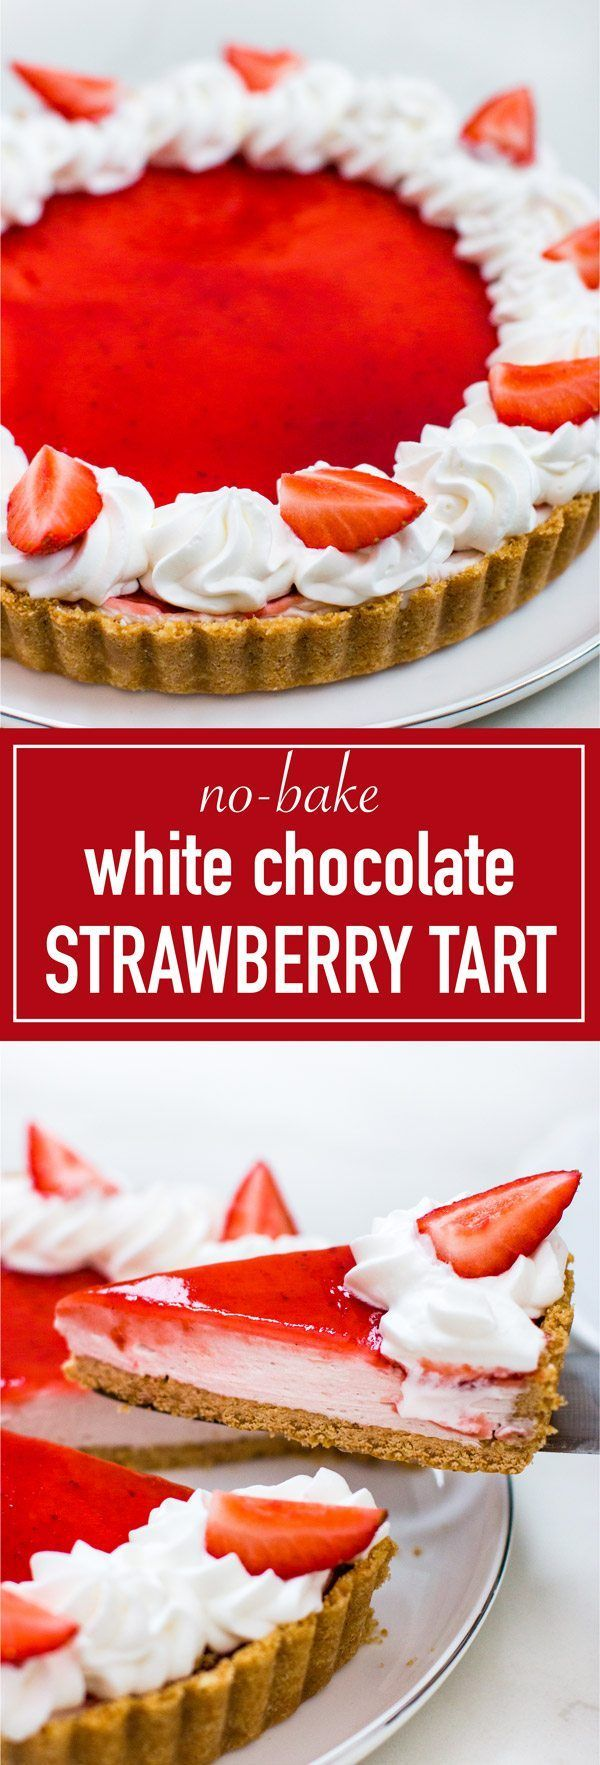 Easy and simple to make white chocolate strawberry tart. 3 layers of of cookie crust, white chocolate ganache mousse, and strawberry jam glaze. Perfect for Valentine's Day!